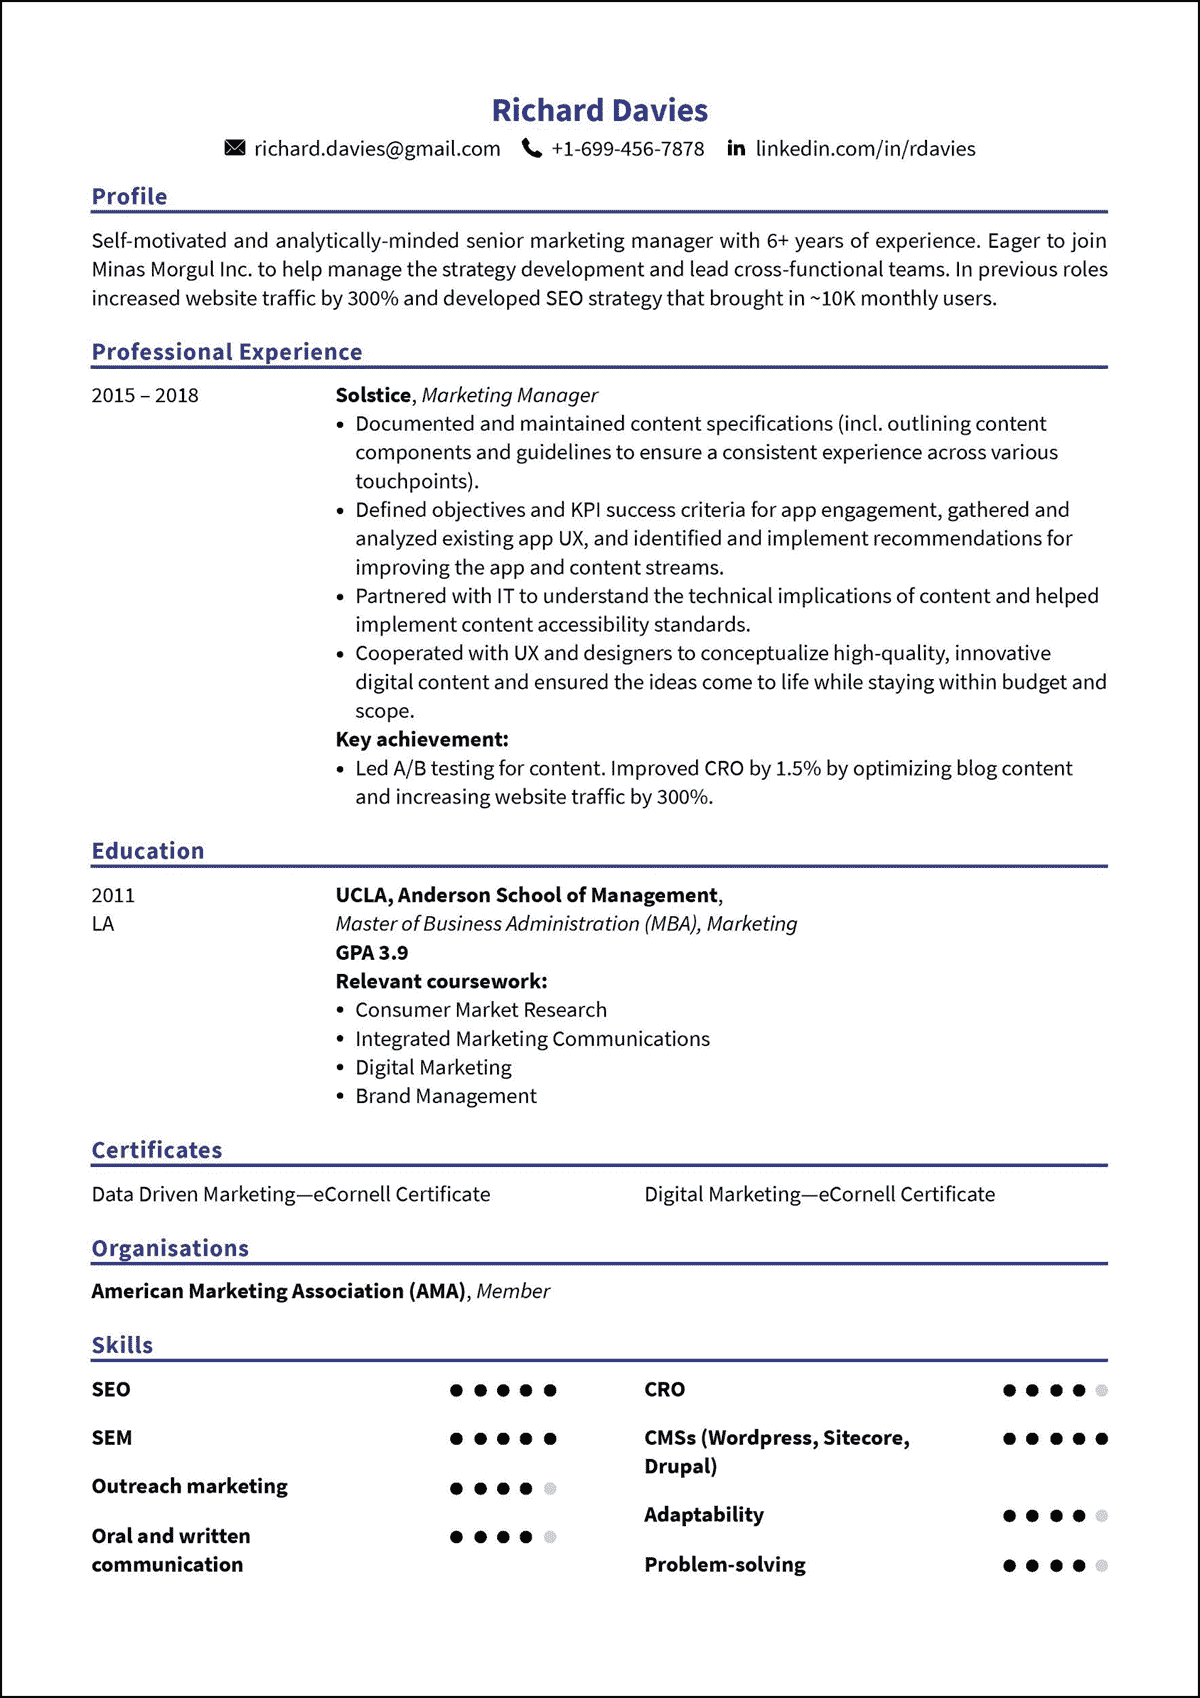 10+ Best Free Resume Builders Online Reviewed [+Example Resumes]